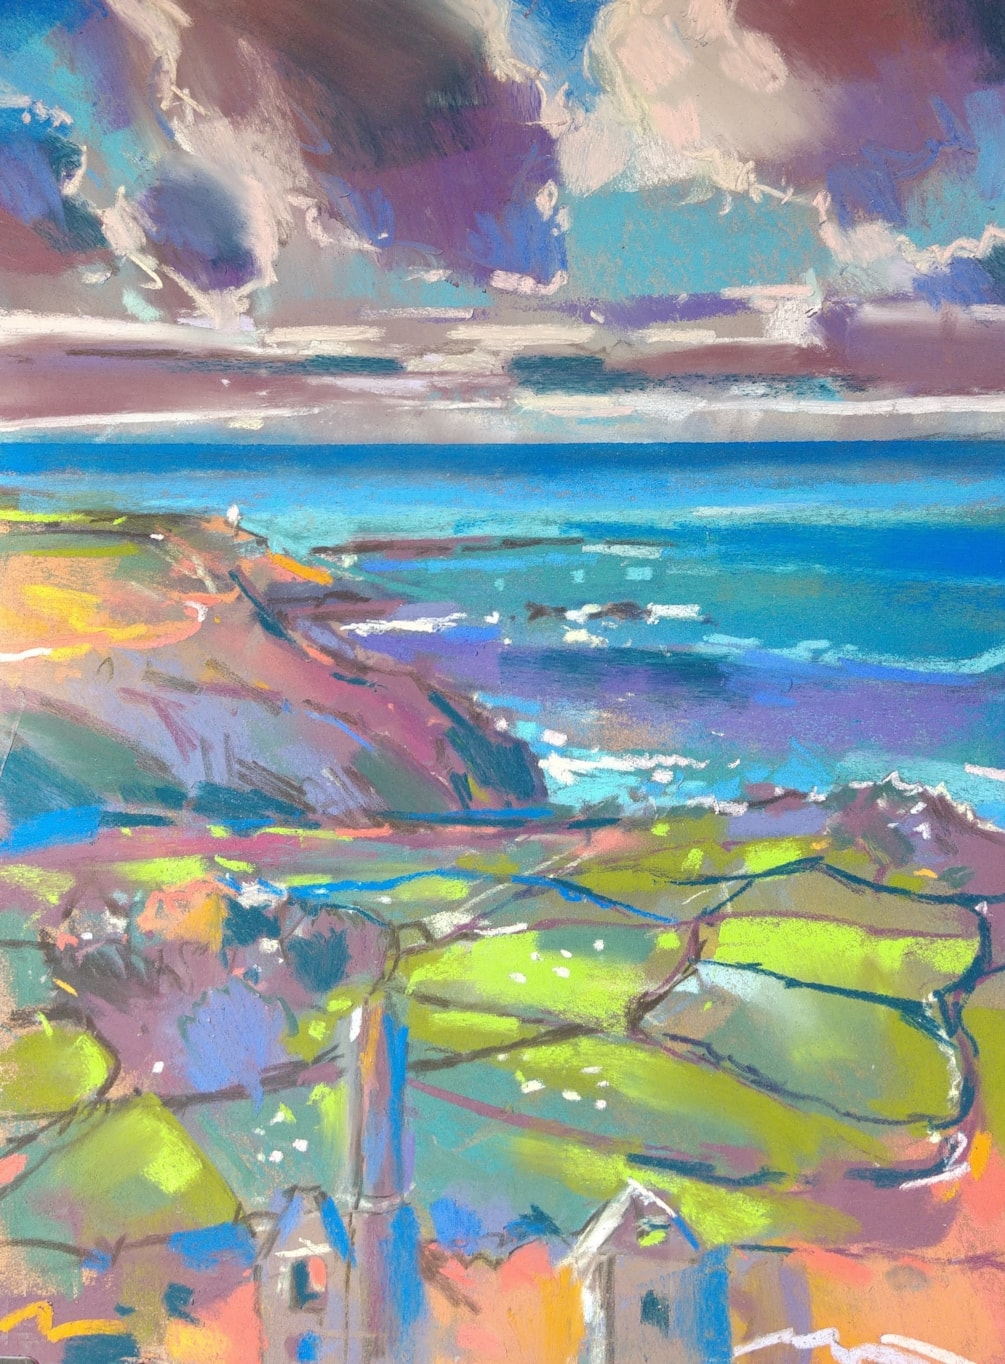 Plein air study from the Carns